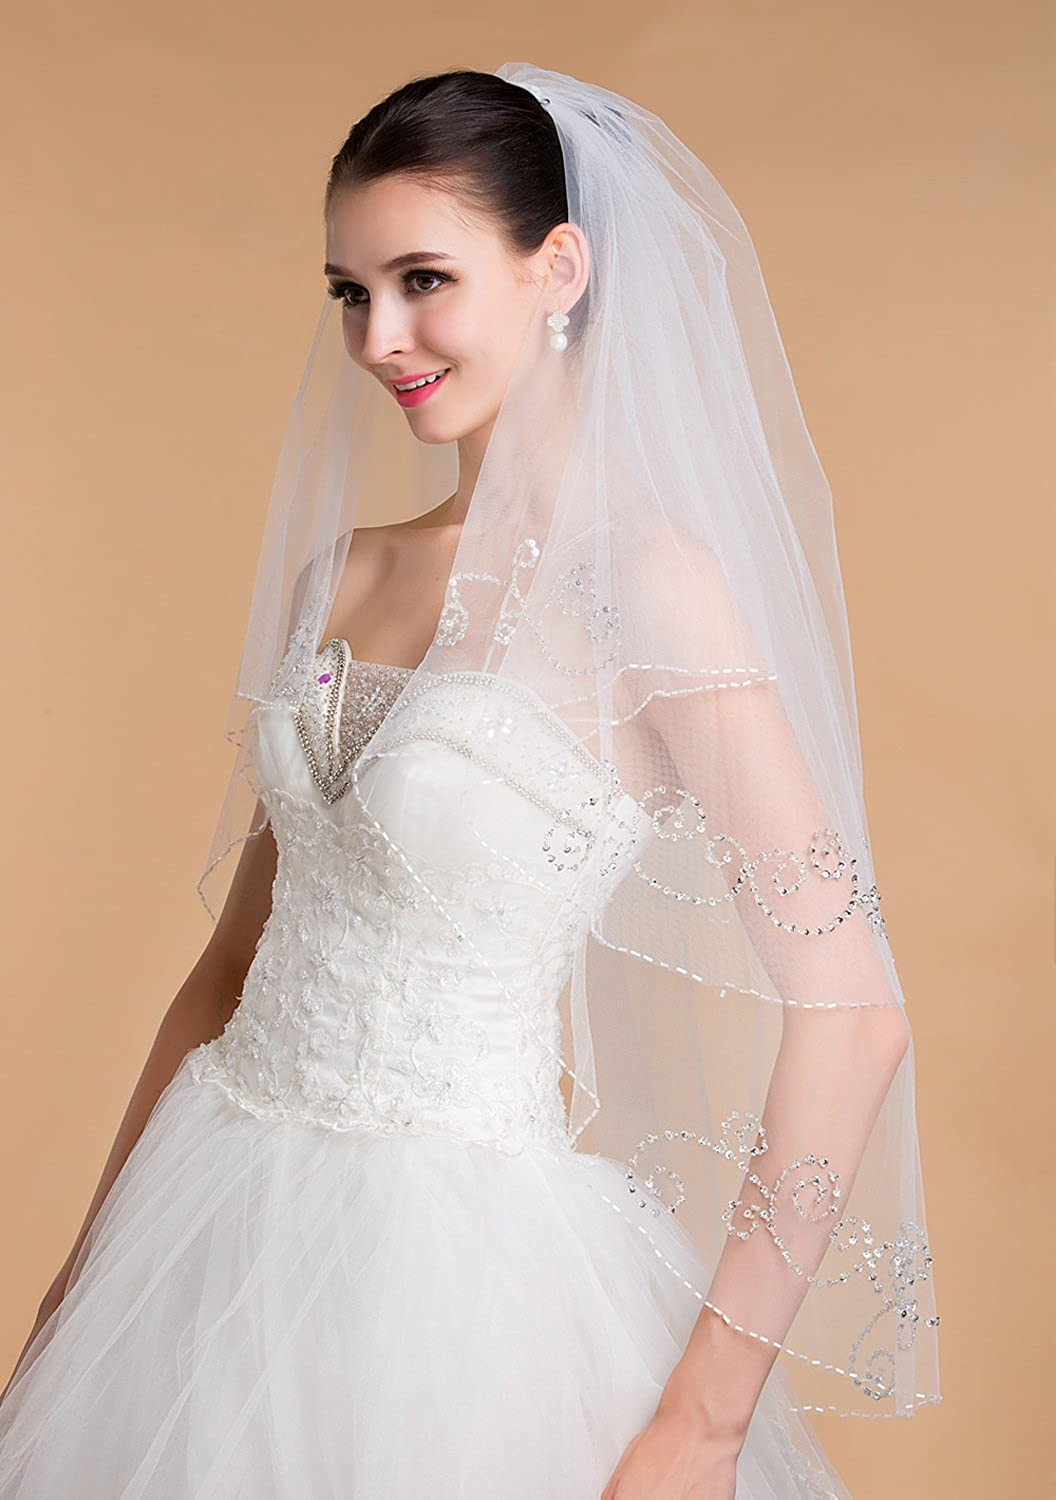 Liveinu Womens 2 Tier Wedding Bridal Veil with Sparkly Crystals Edge